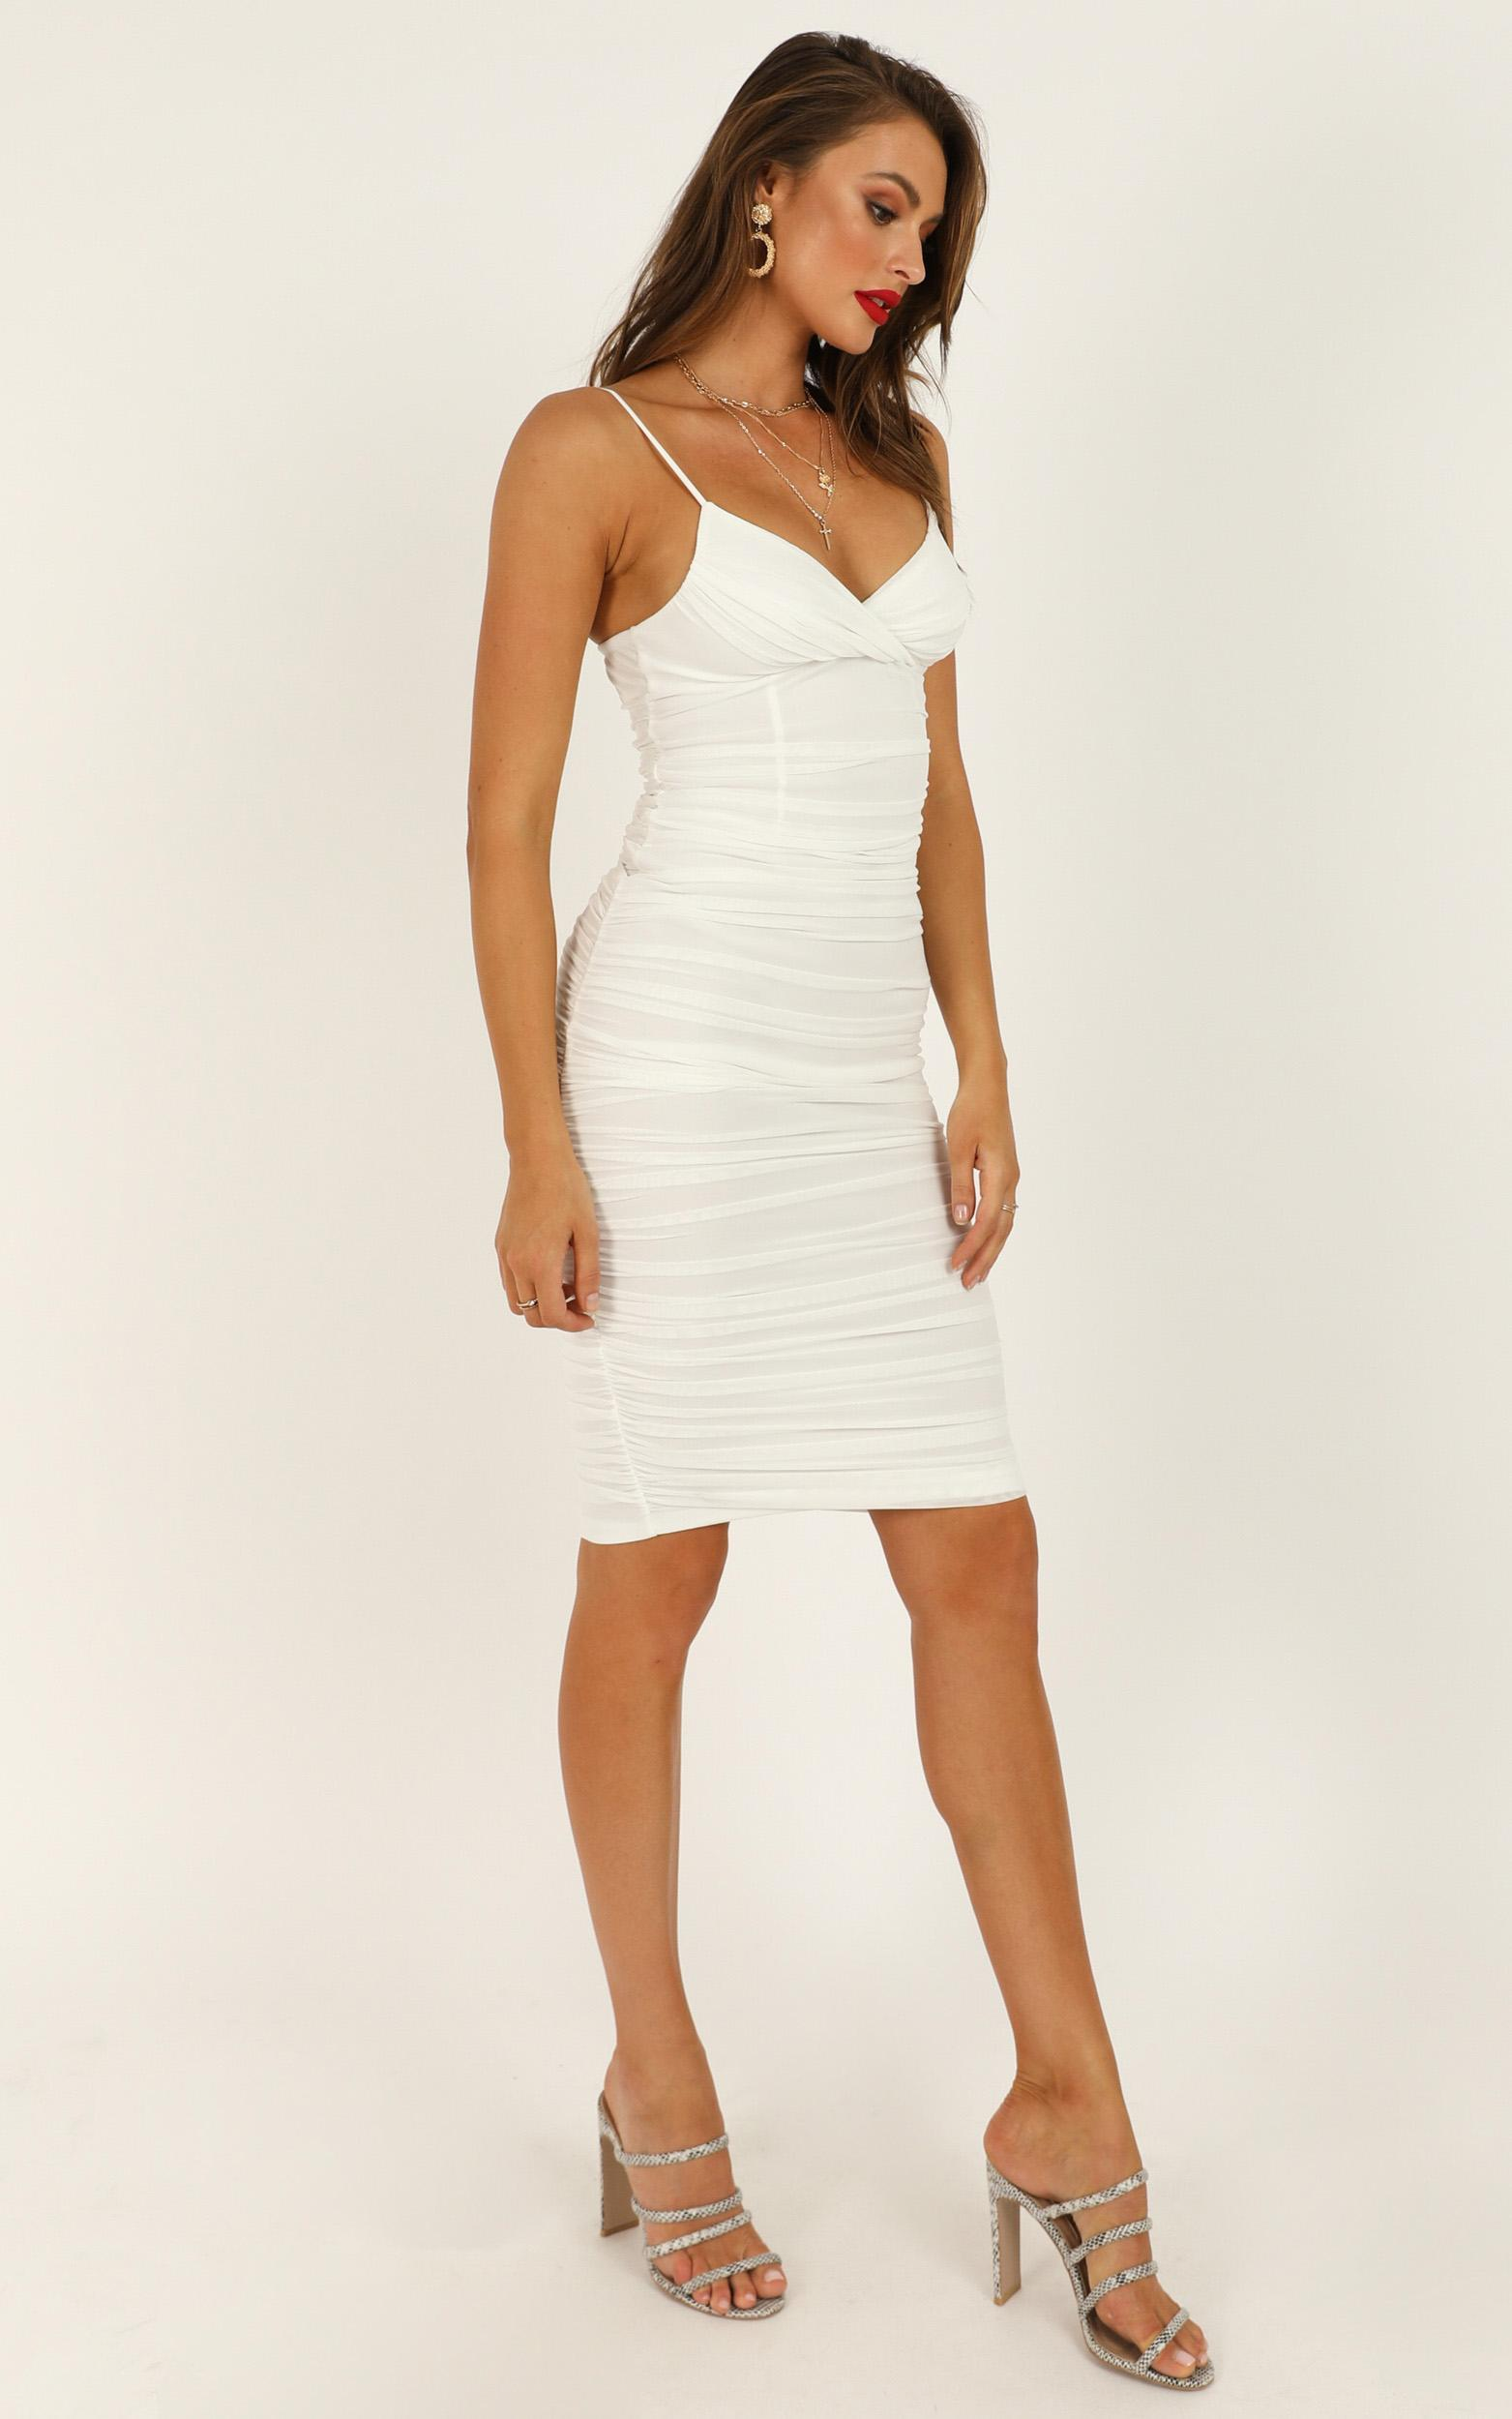 Snowy Hill dress in white - 12 (L), White, hi-res image number null